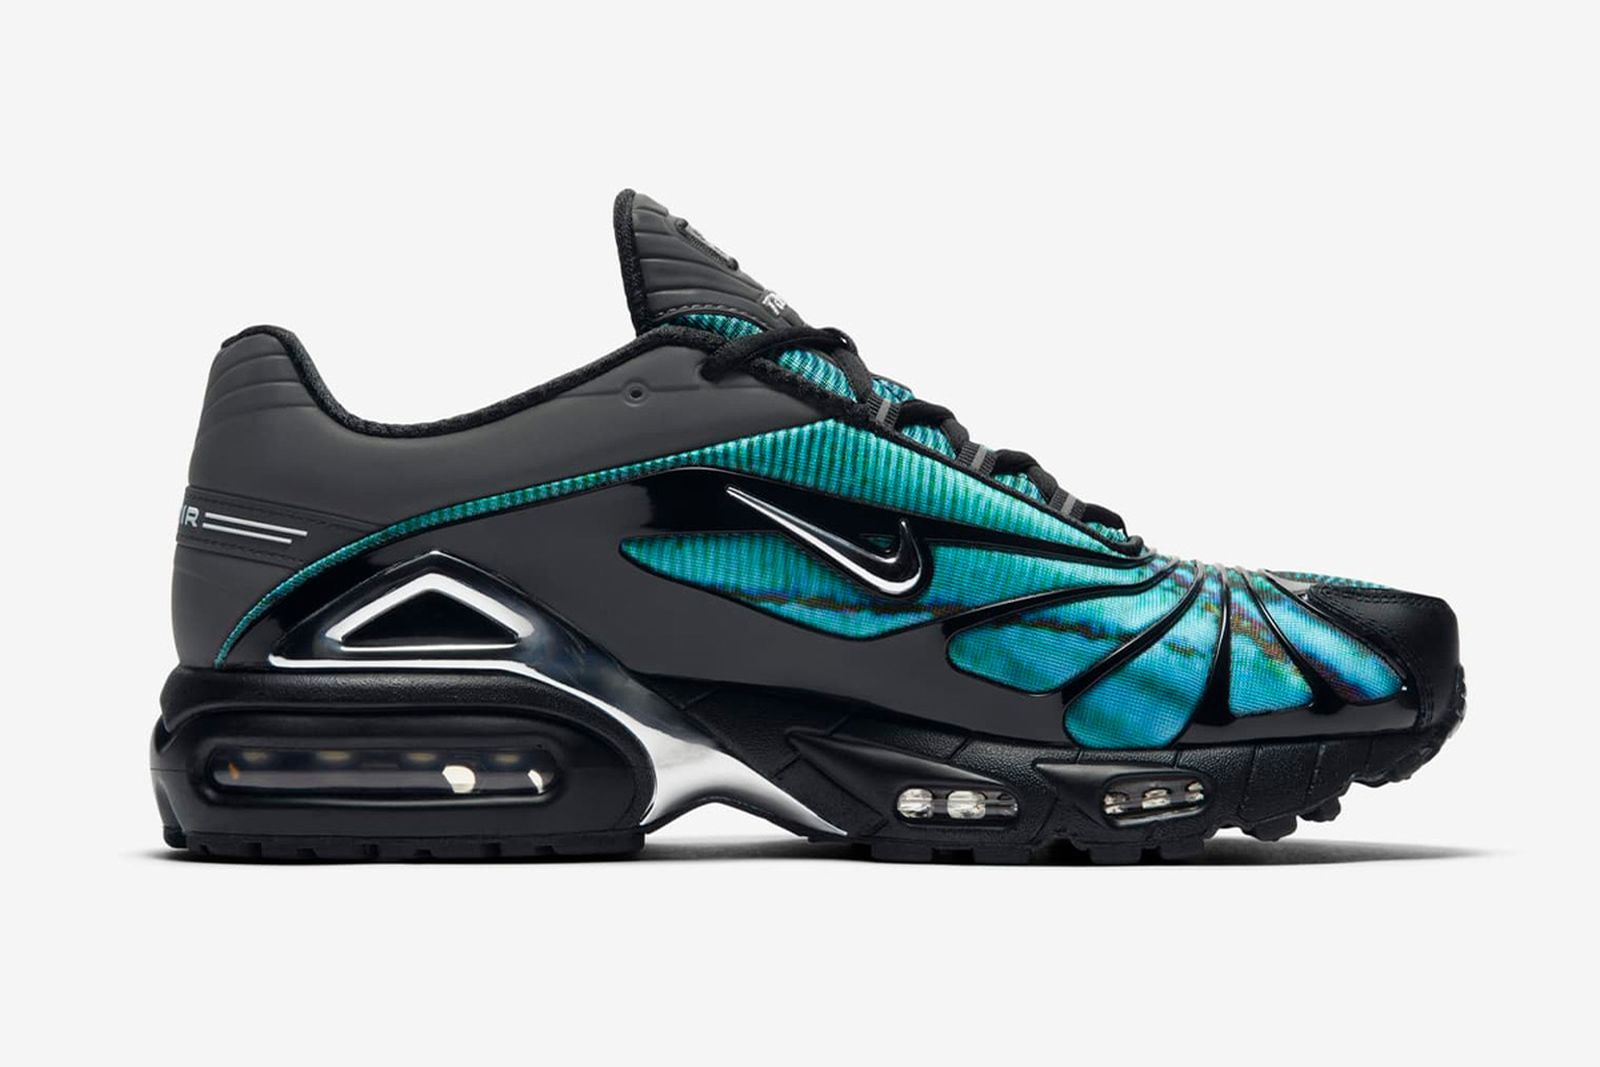 skepta-nike-air-max-tailwind-5-release-date-price-official-01